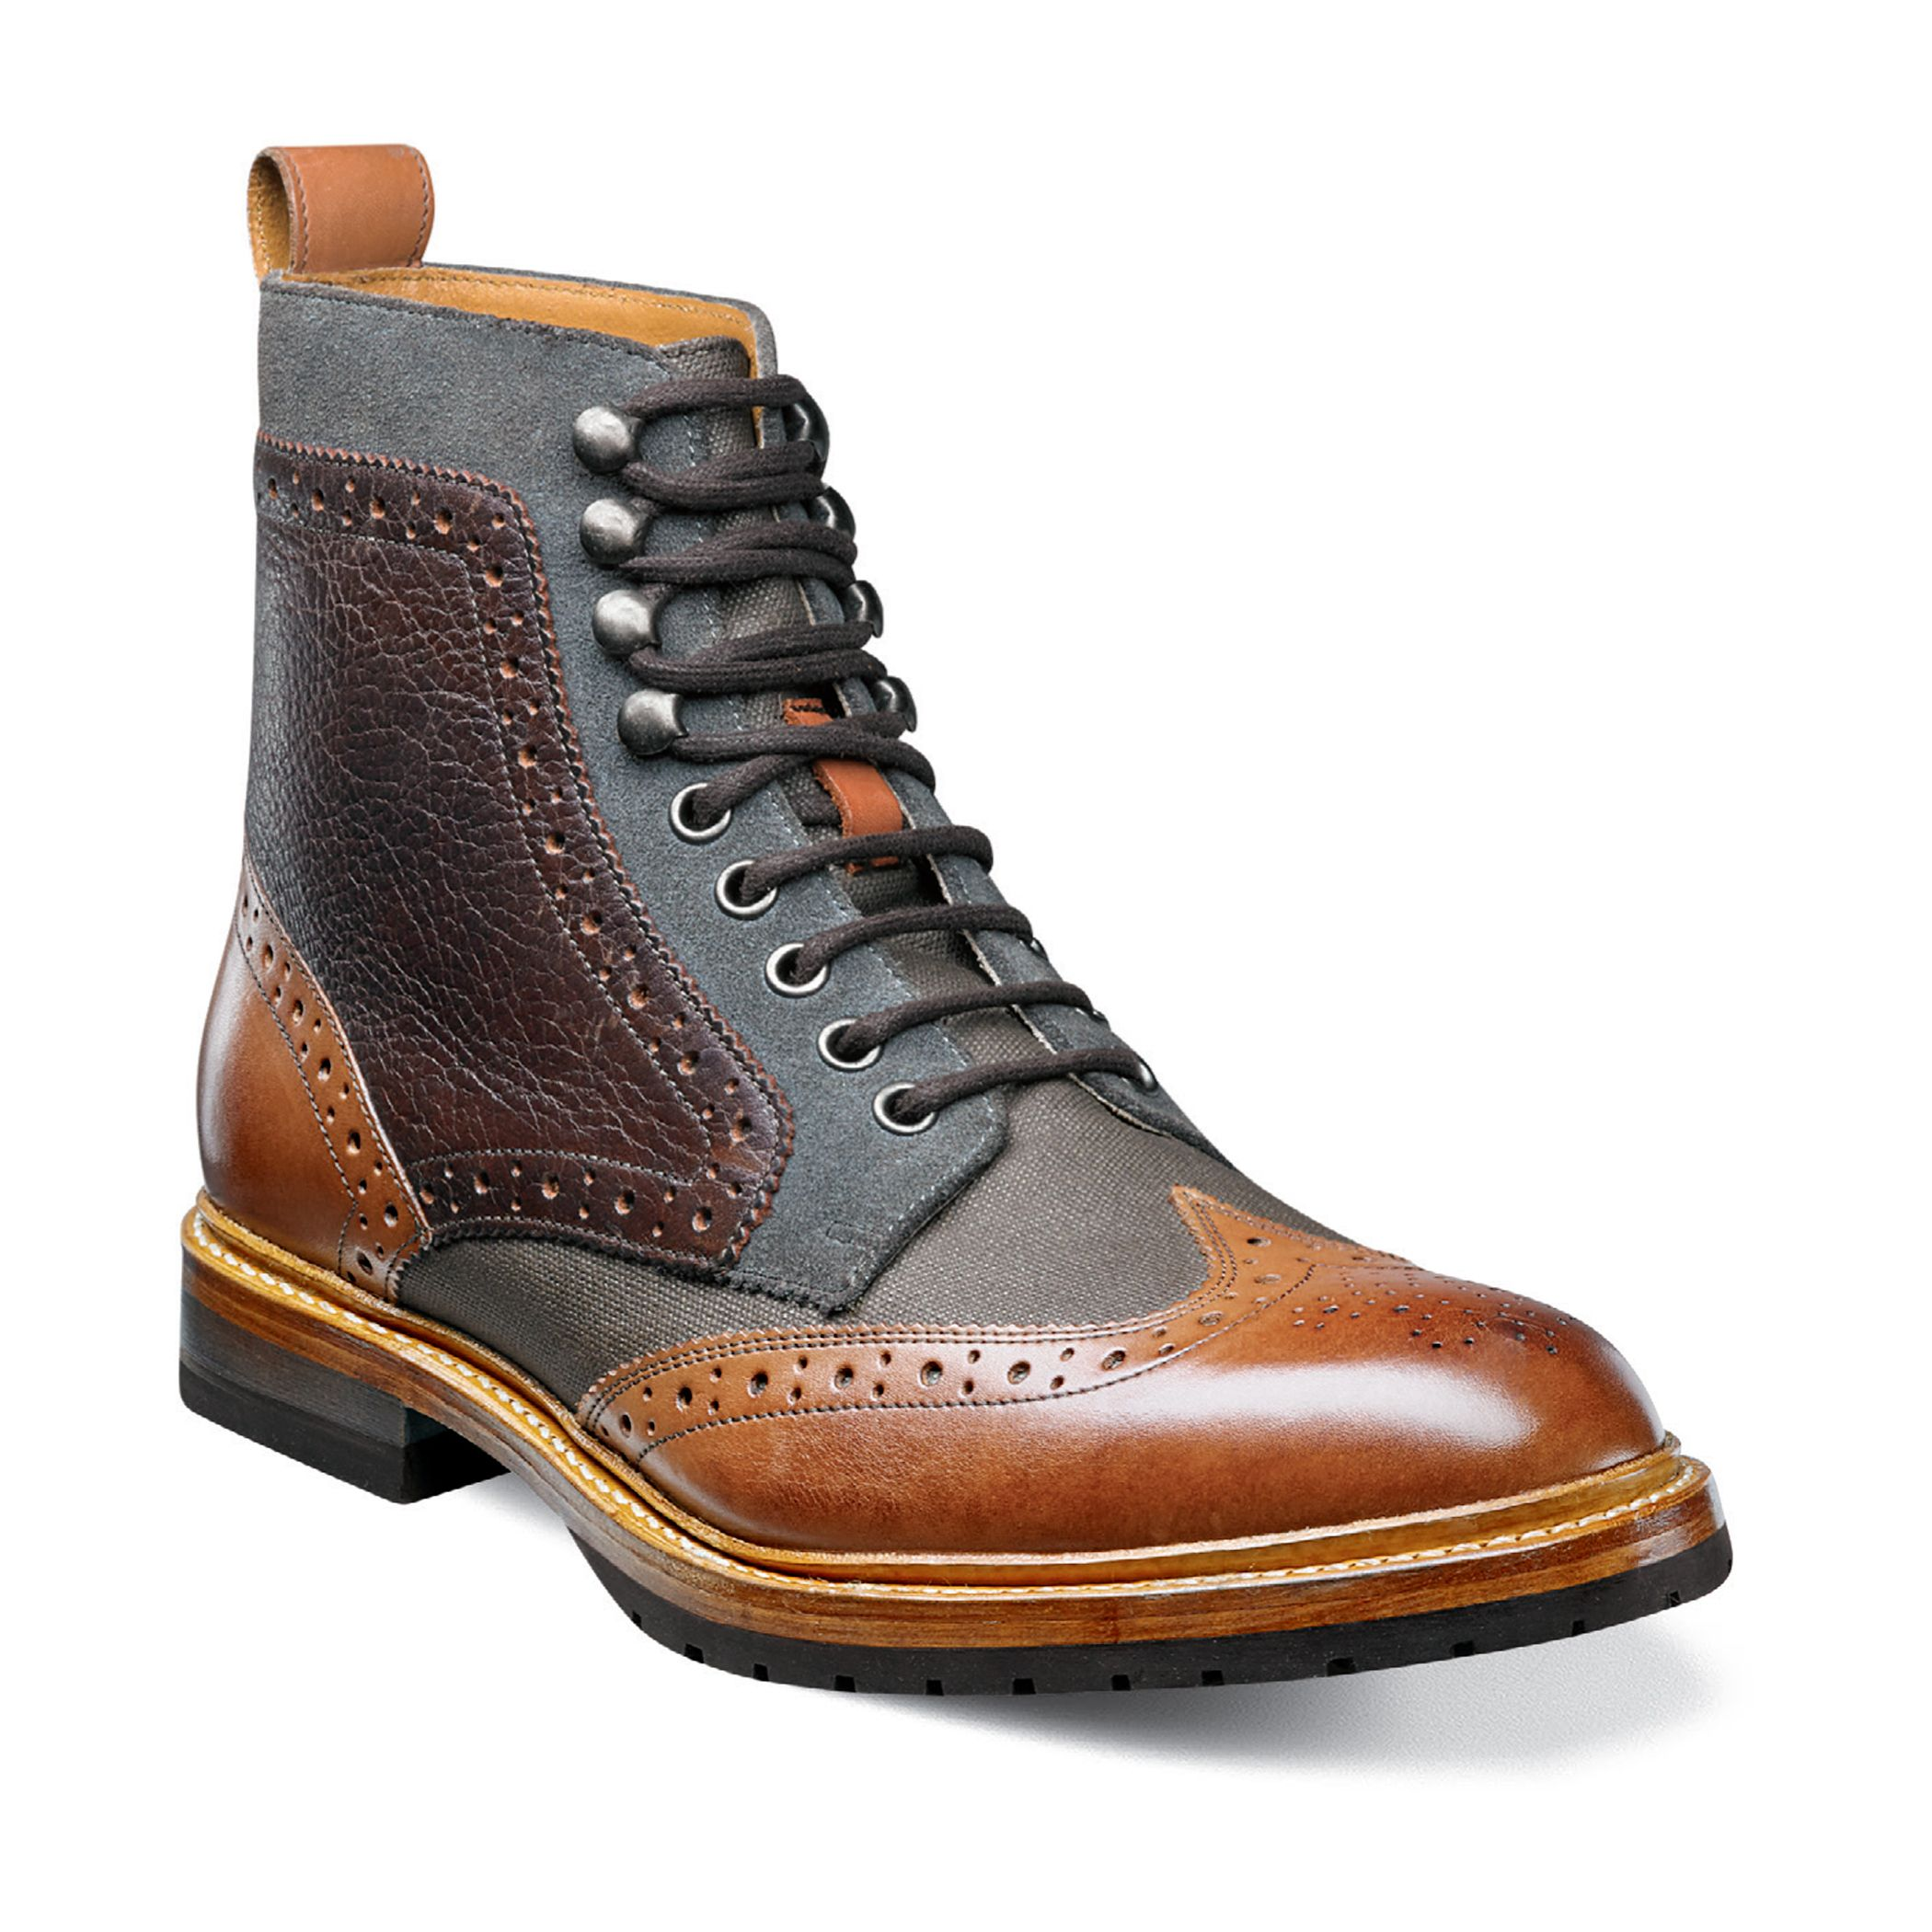 stacy adams dress shoes price